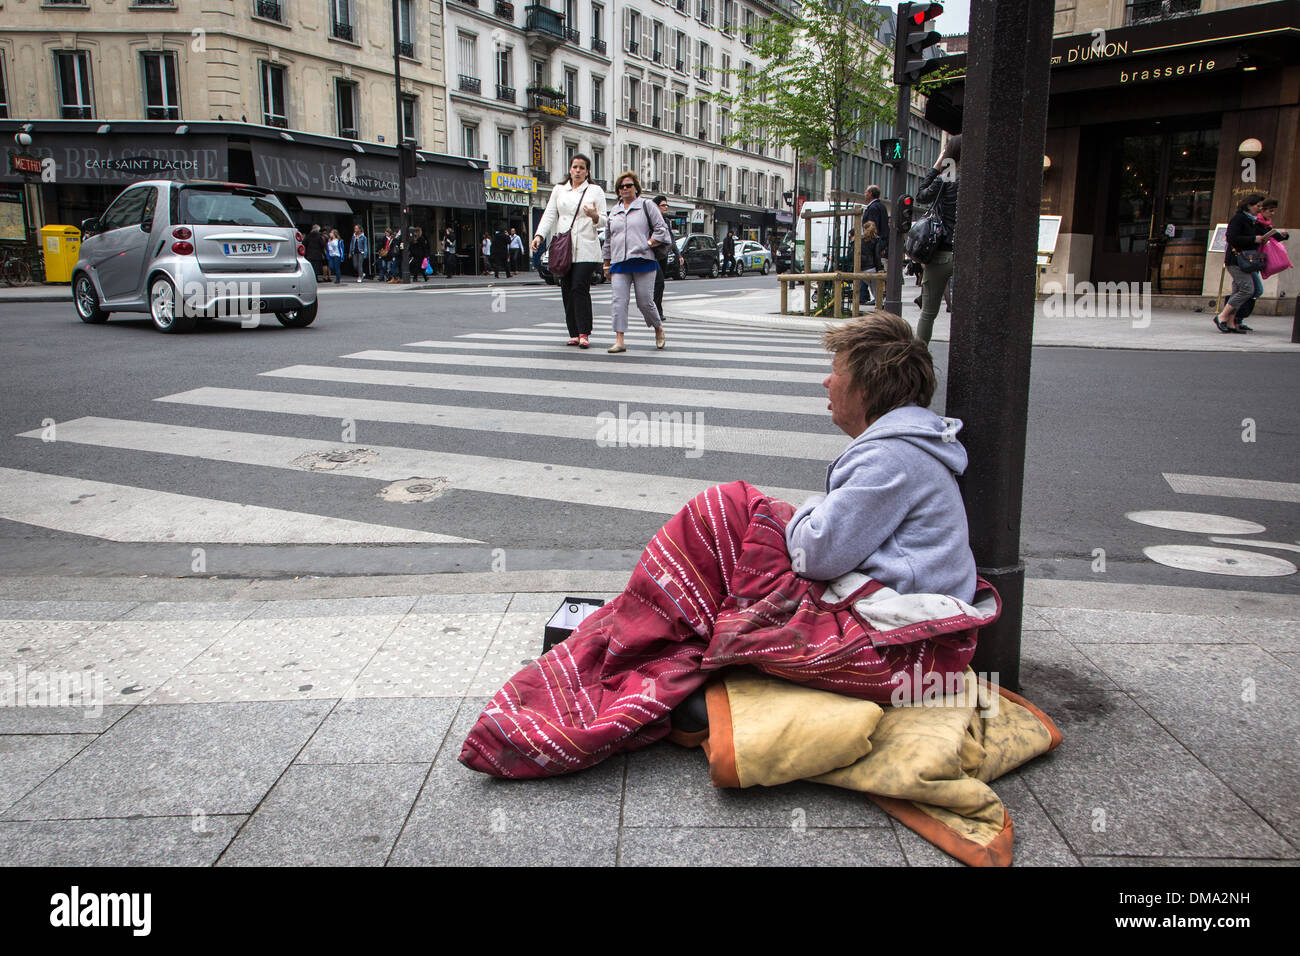 HOMELESS WOMAN LYING ON THE SIDEWALK, MISERY AND POVERTY, RUE DE RENNES, 6TH ARRONDISSEMENT, PARIS, FRANCE - Stock Image